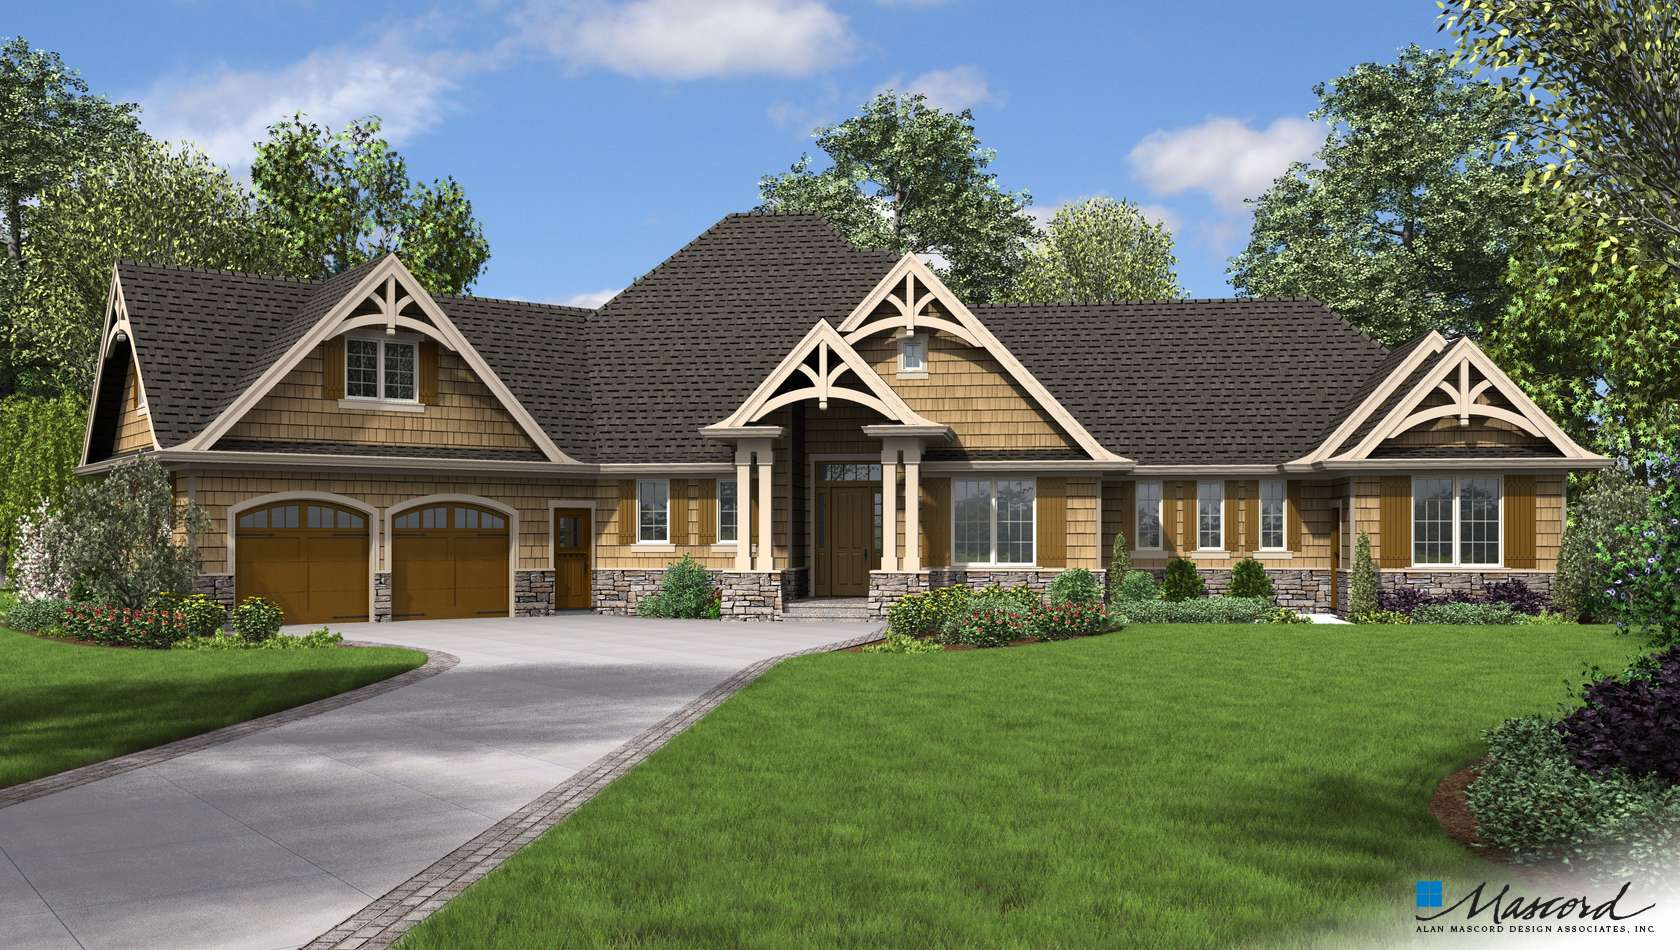 Main image for house plan 1248A: The Bishop